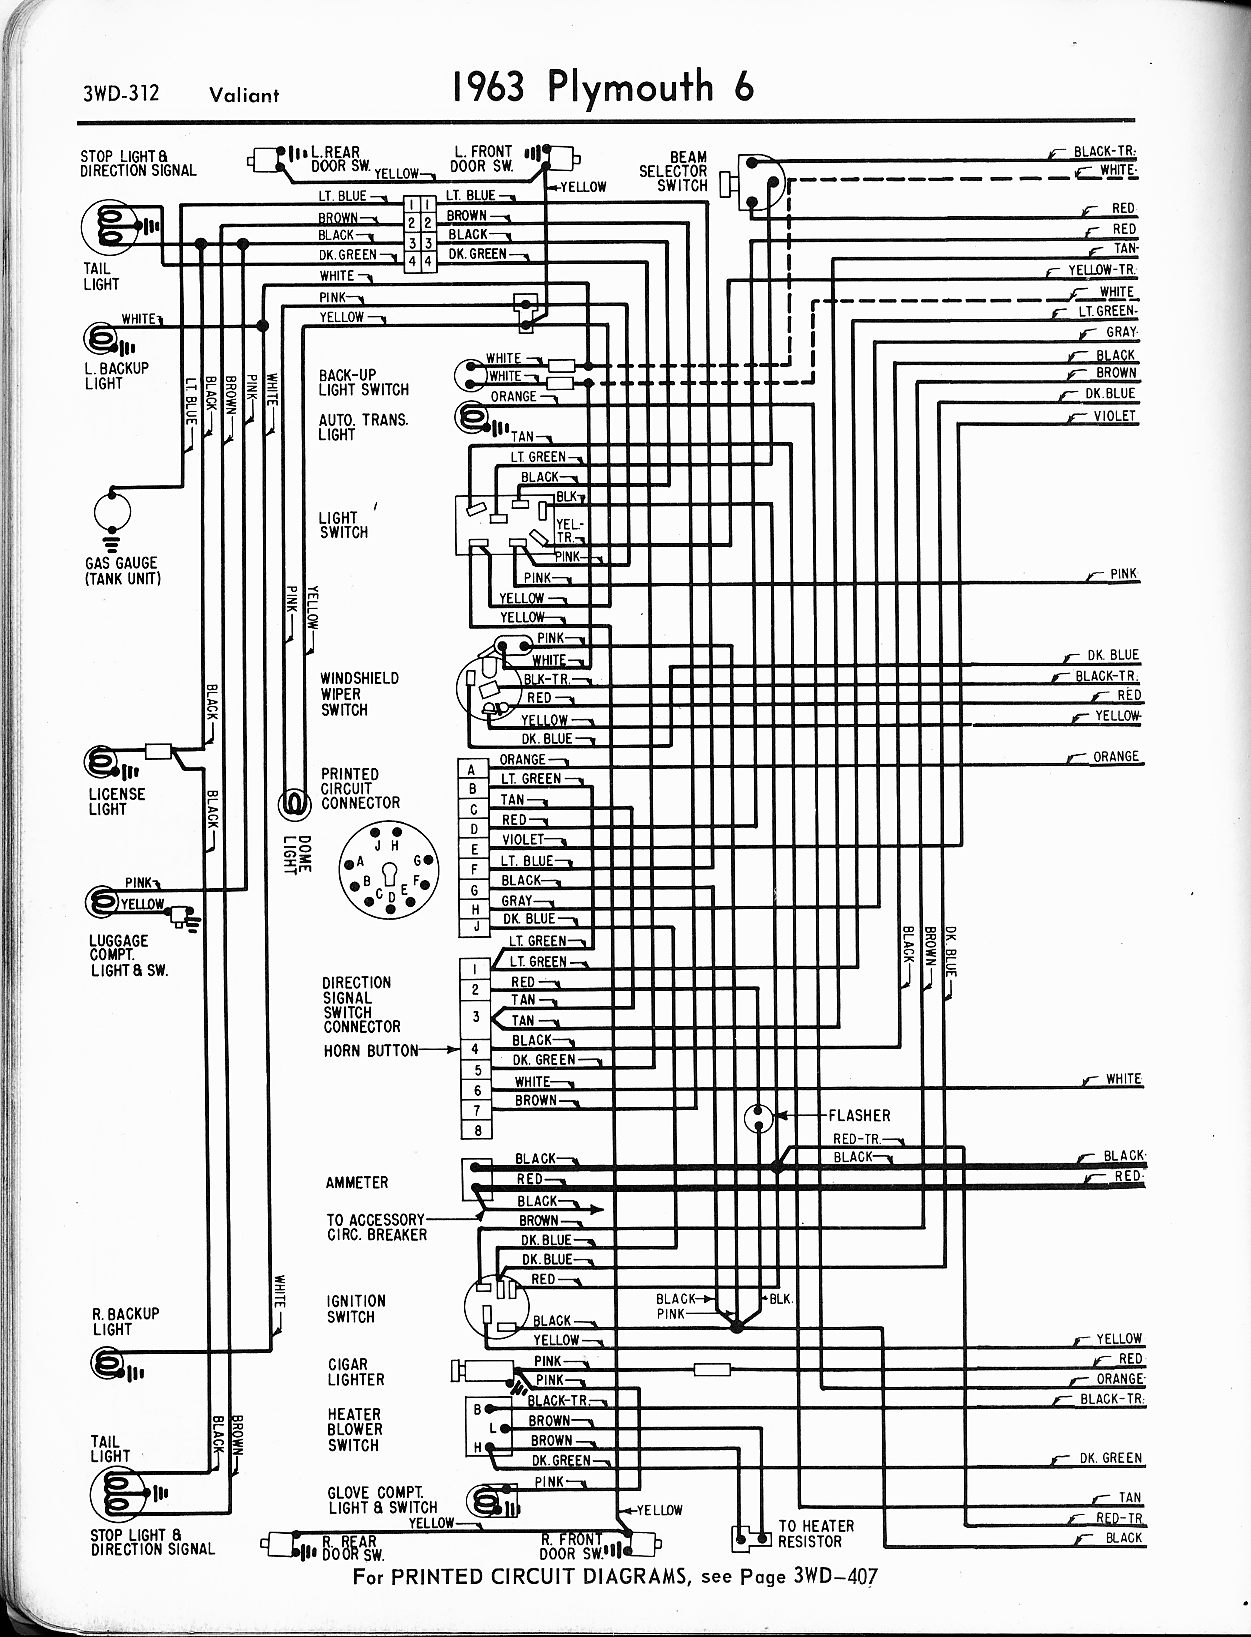 1968 Fury Wiring Diagram Harness Schematics Ruud Zephyr Chrysler Convertible Schematic Rh Caltech Ctp Com 1976 Plymouth